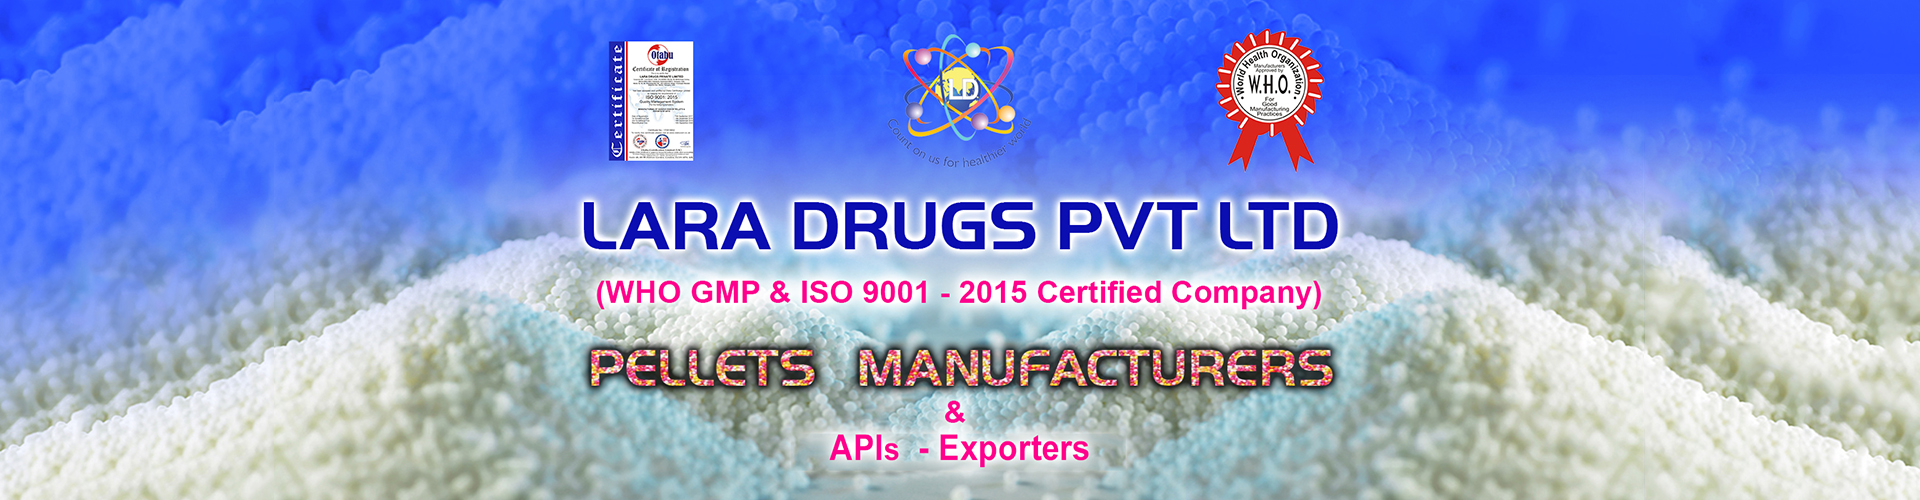 lara drugs pvt ltd